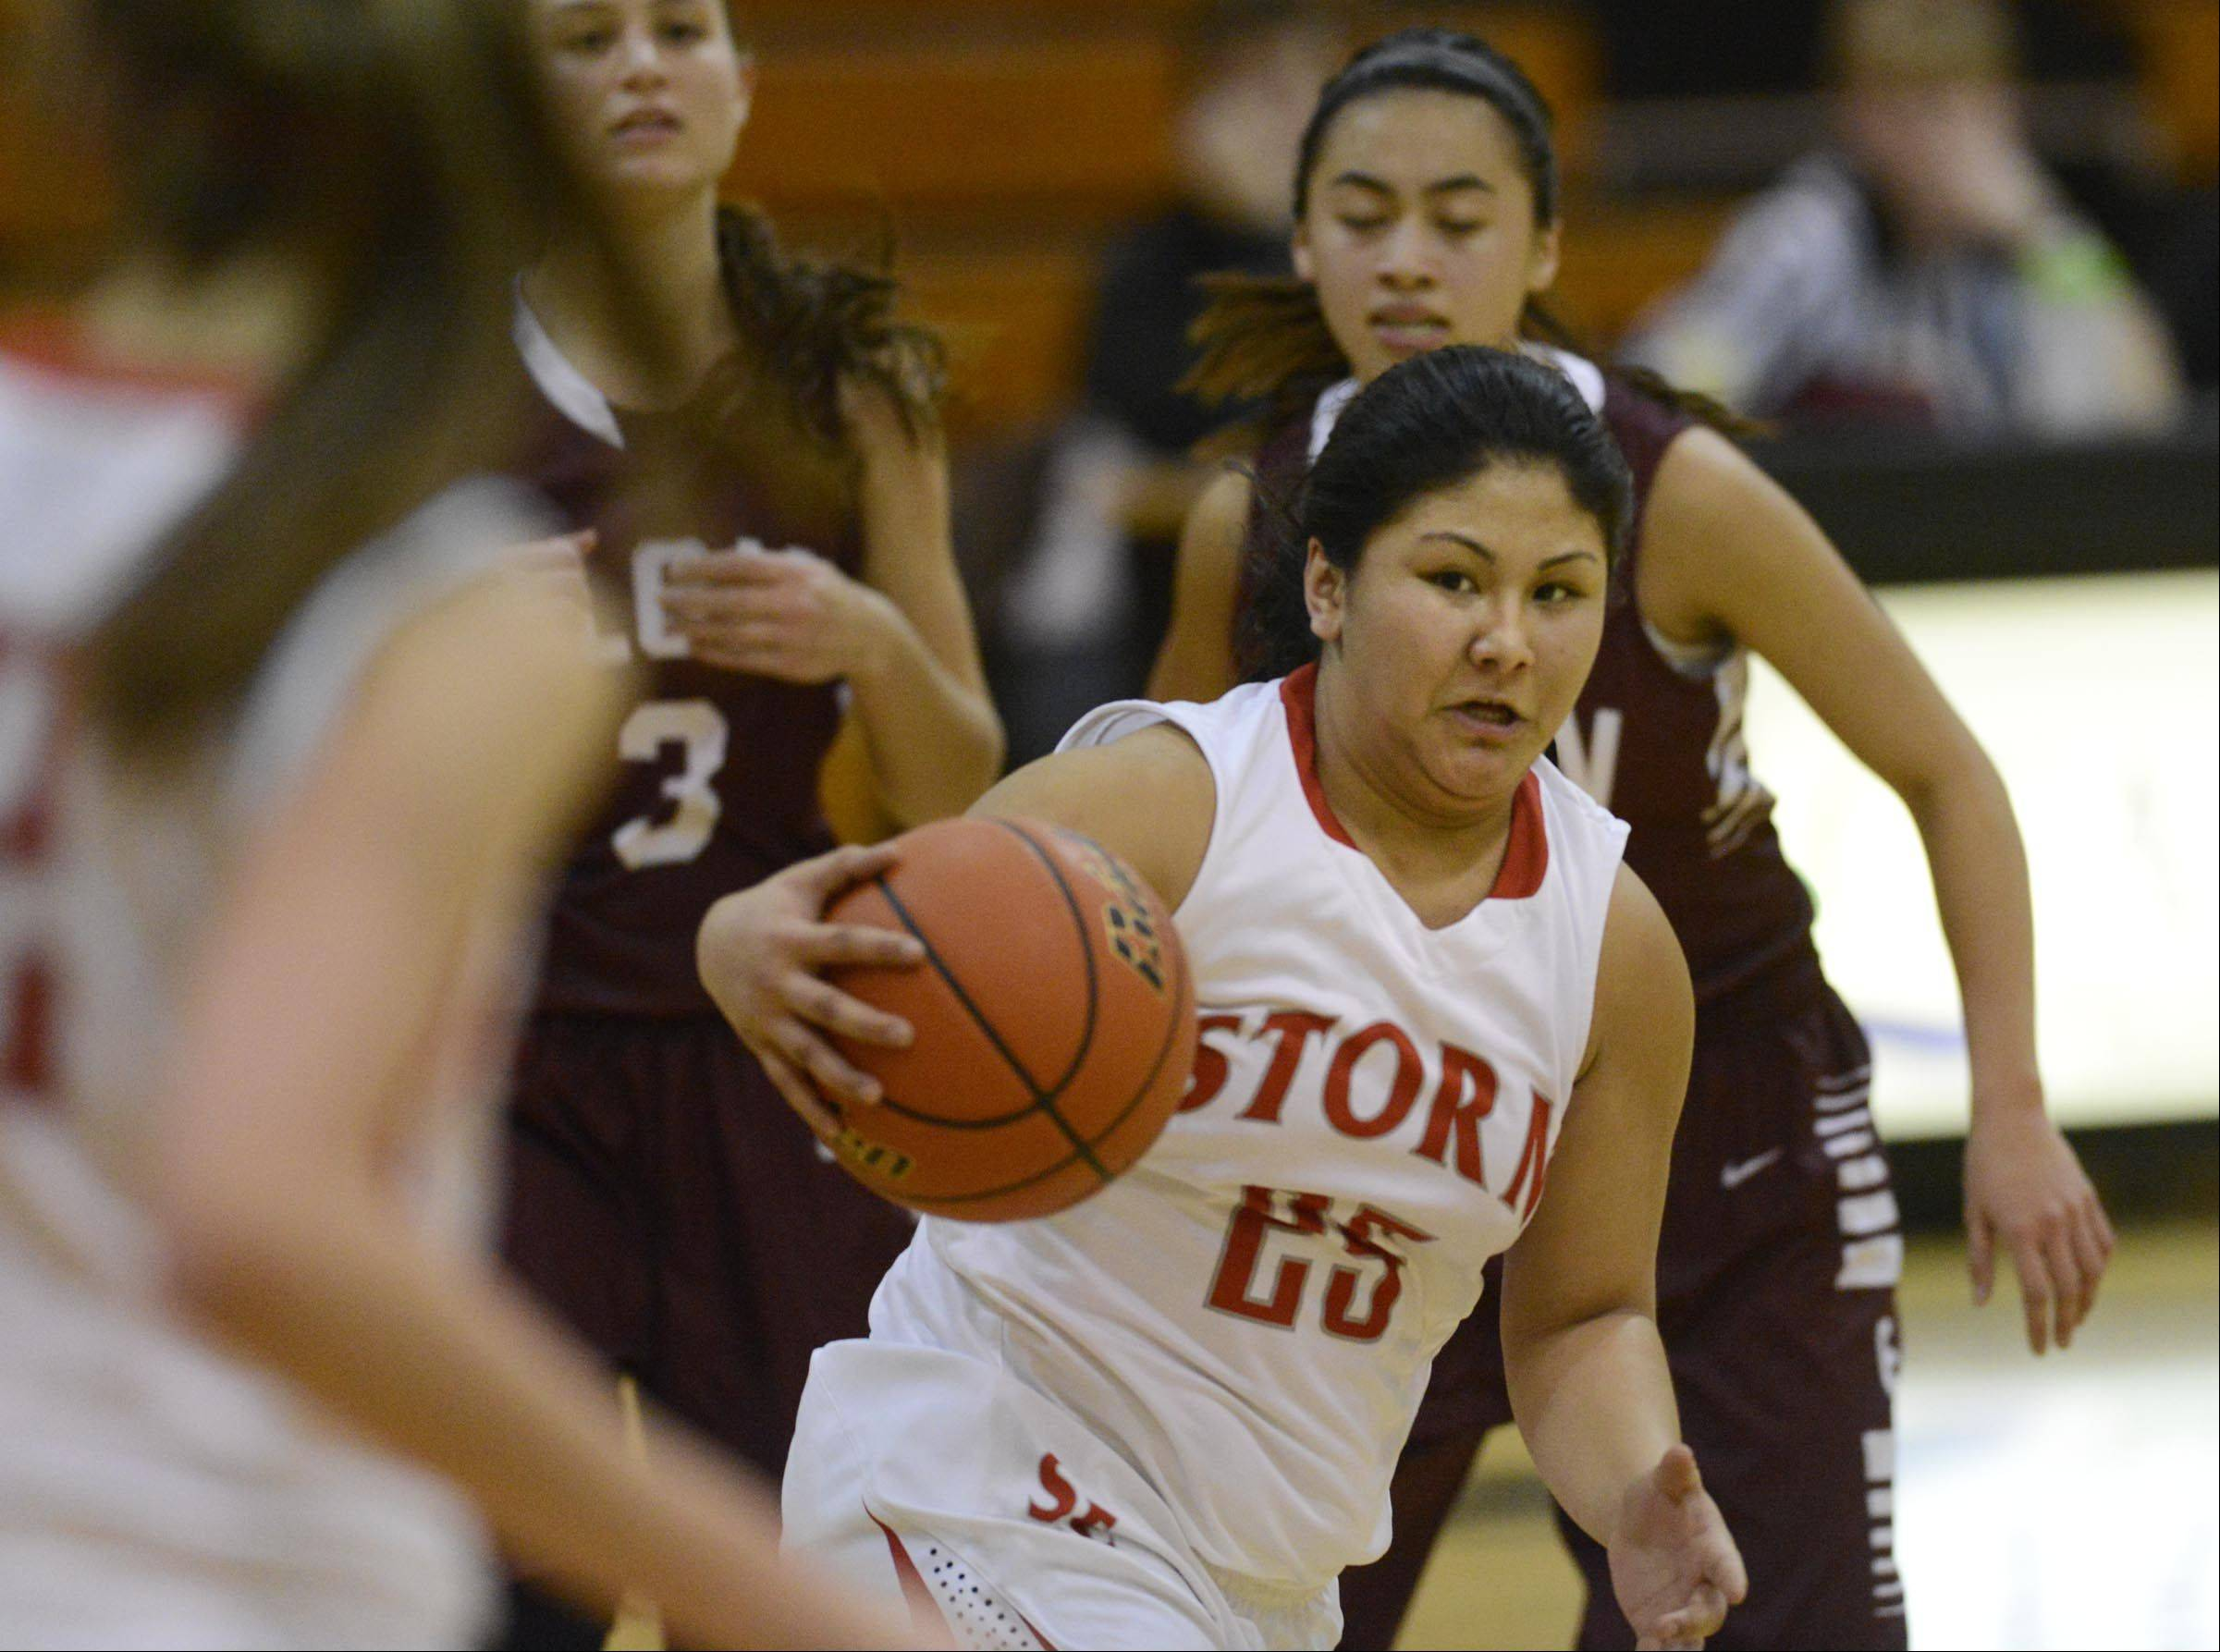 South Elgin's Nadia Yang looks for a teammate in Tuesday's Class 4A regional semifinal game against Elgin in Streamwood.